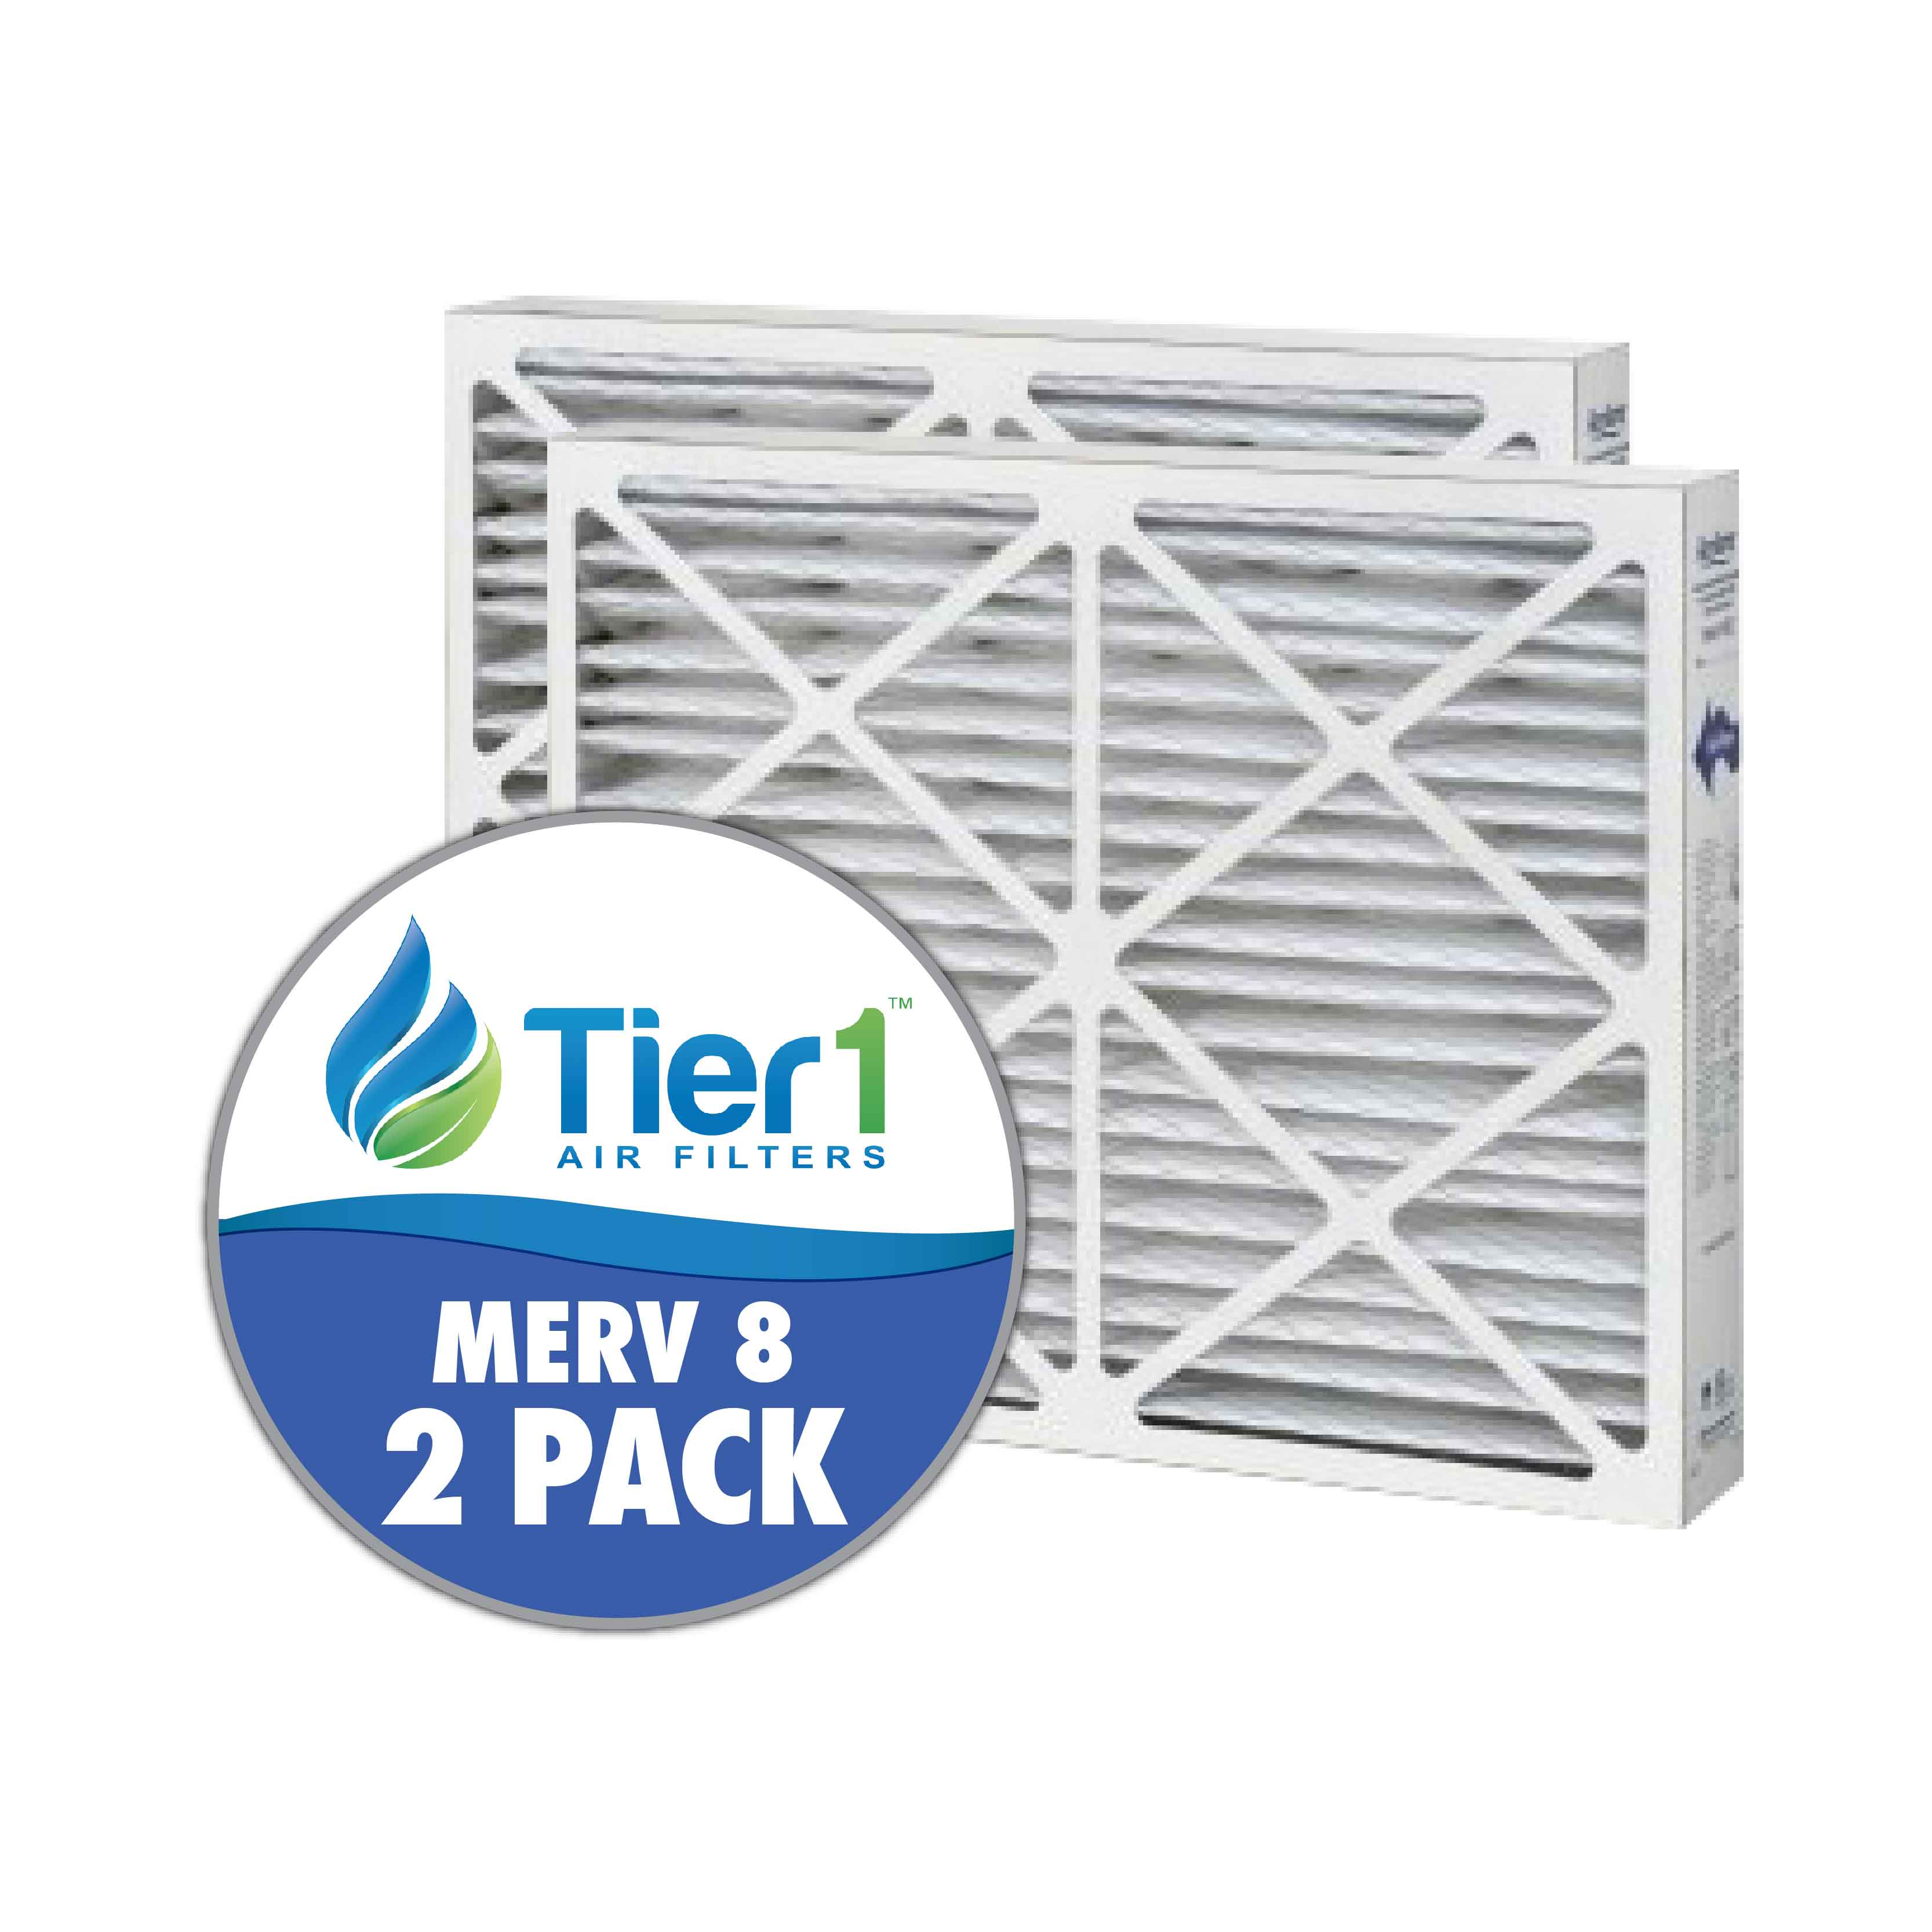 Tier1 brand replacement for Aprilaire #102 - 20 x 25.25 x 3.5 - MERV 8 (2-Pack) TIER1-DPFS20X2525X350